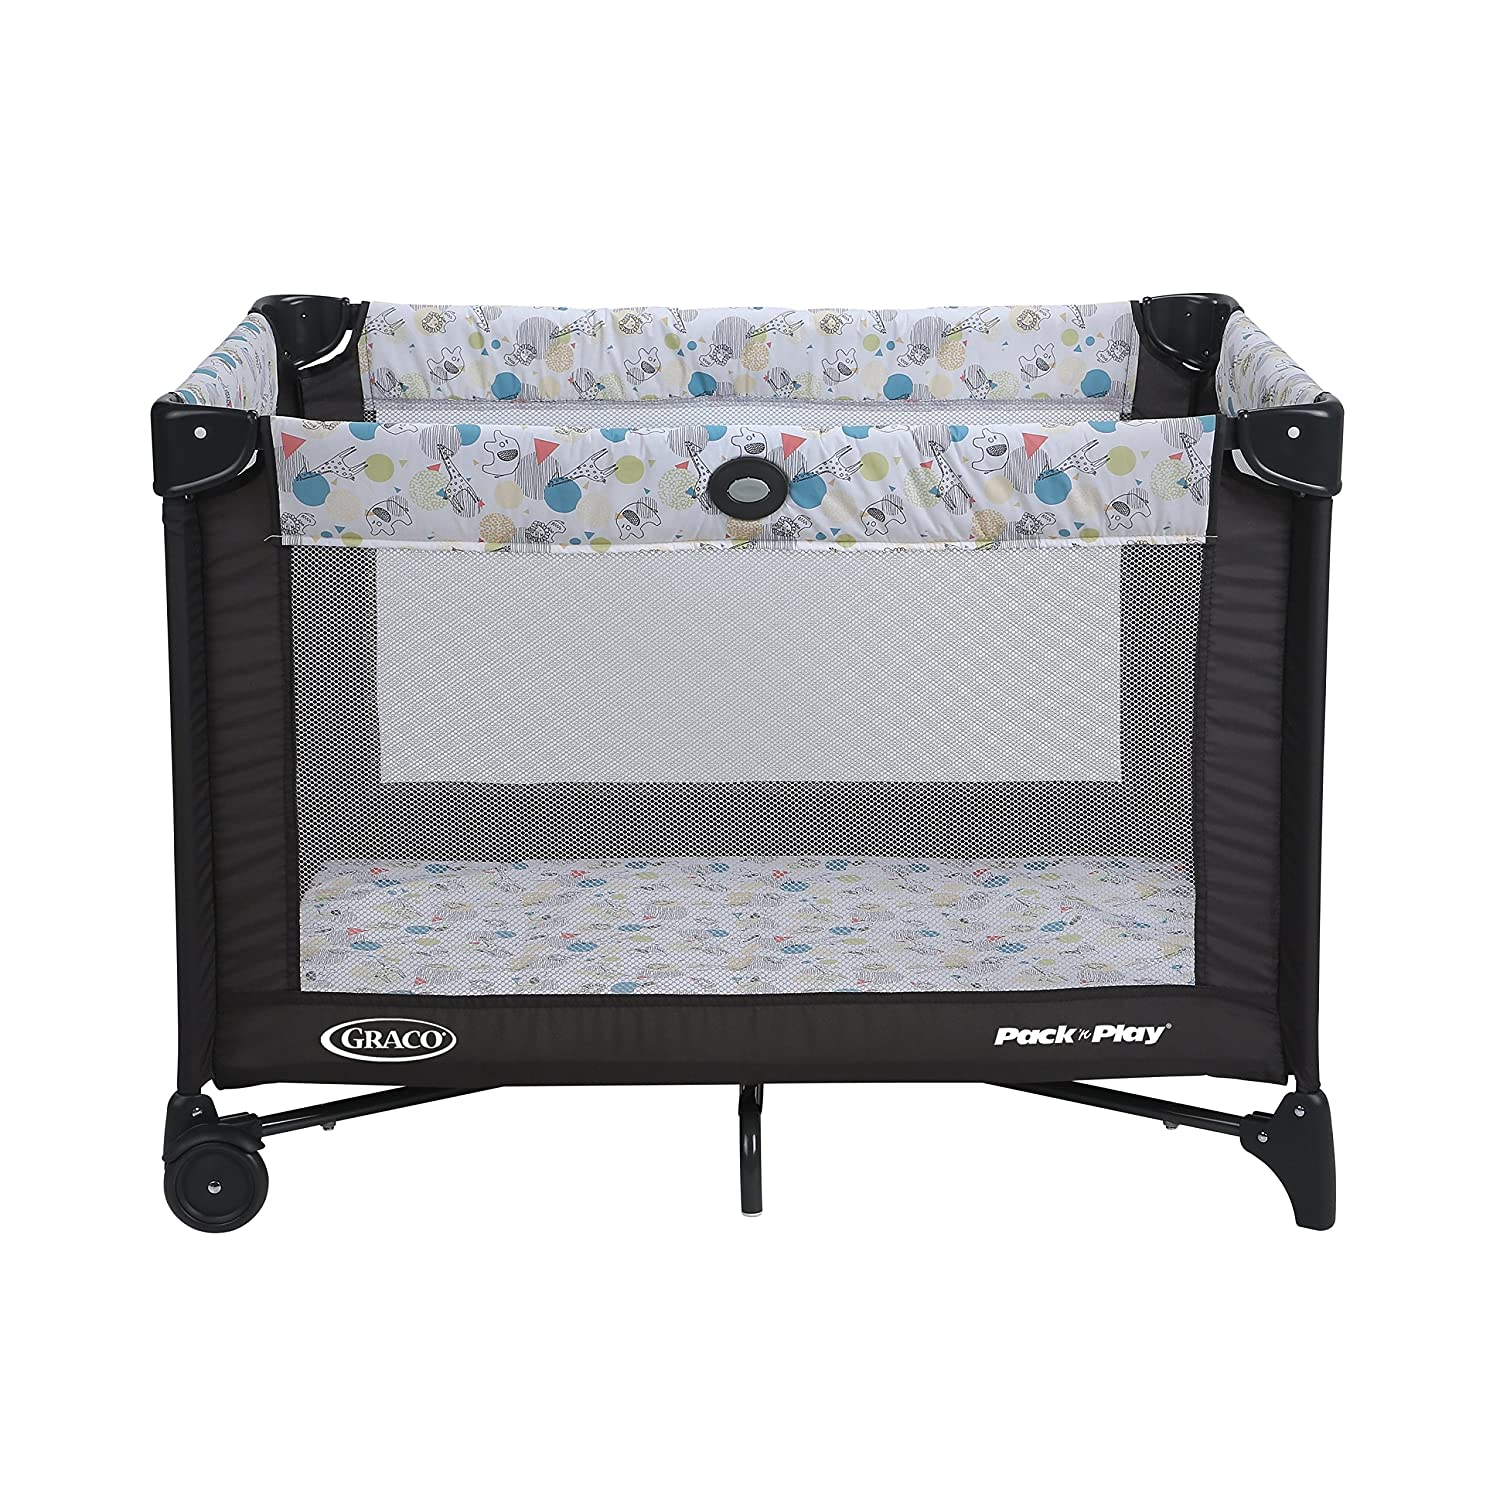 Graco Pack n Play Portable Playard, Carnival